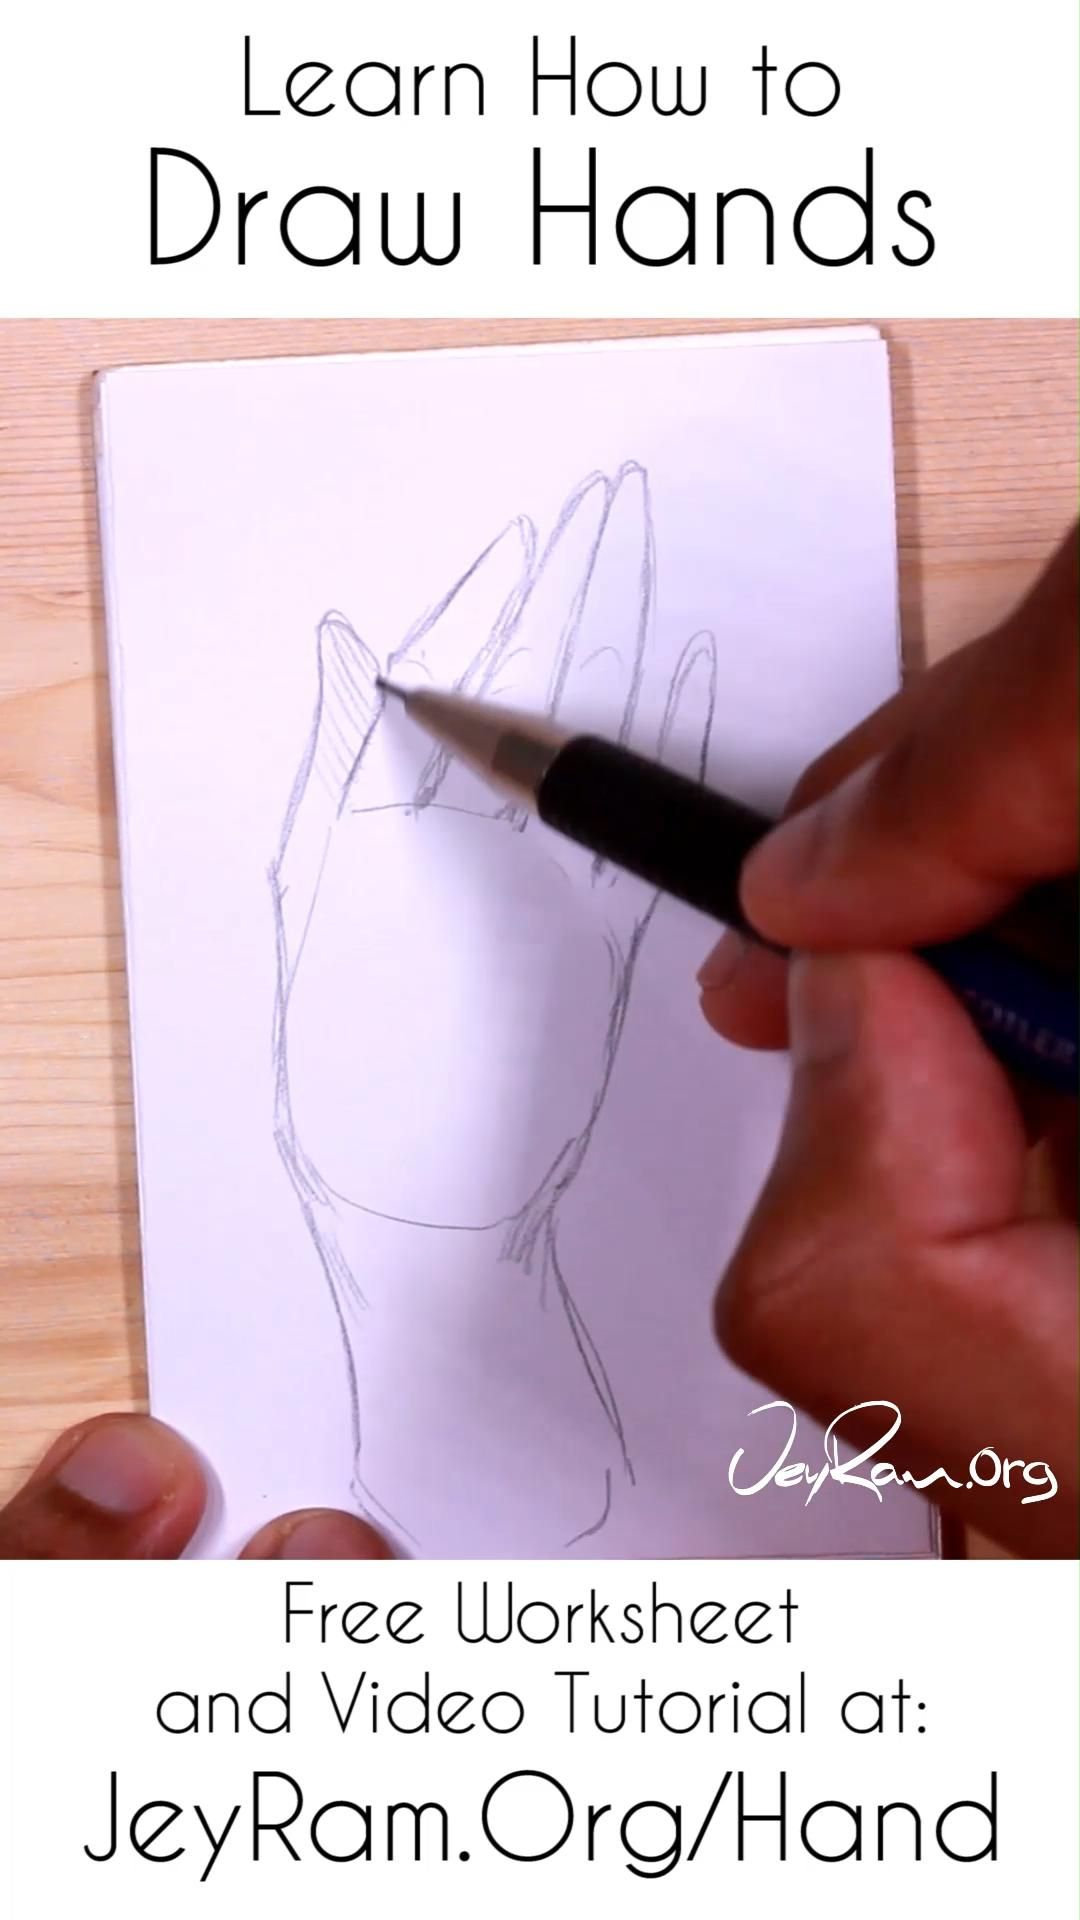 Learn How To Draw Hands For Beginners Video In 2020 How To Draw Hands Learn To Draw Drawings